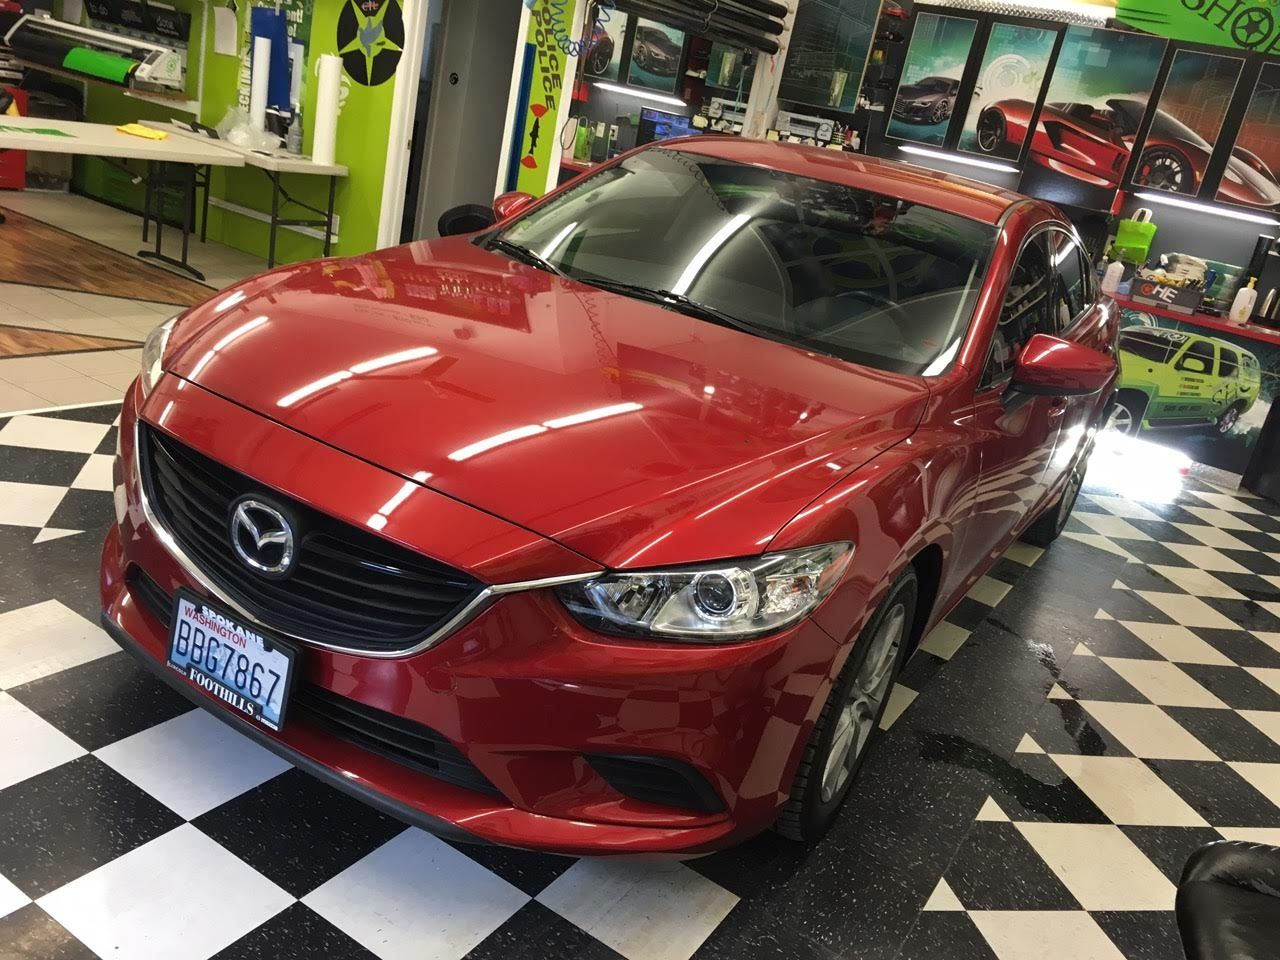 Mazda 6 was one of the projects today! RED, thats a hot